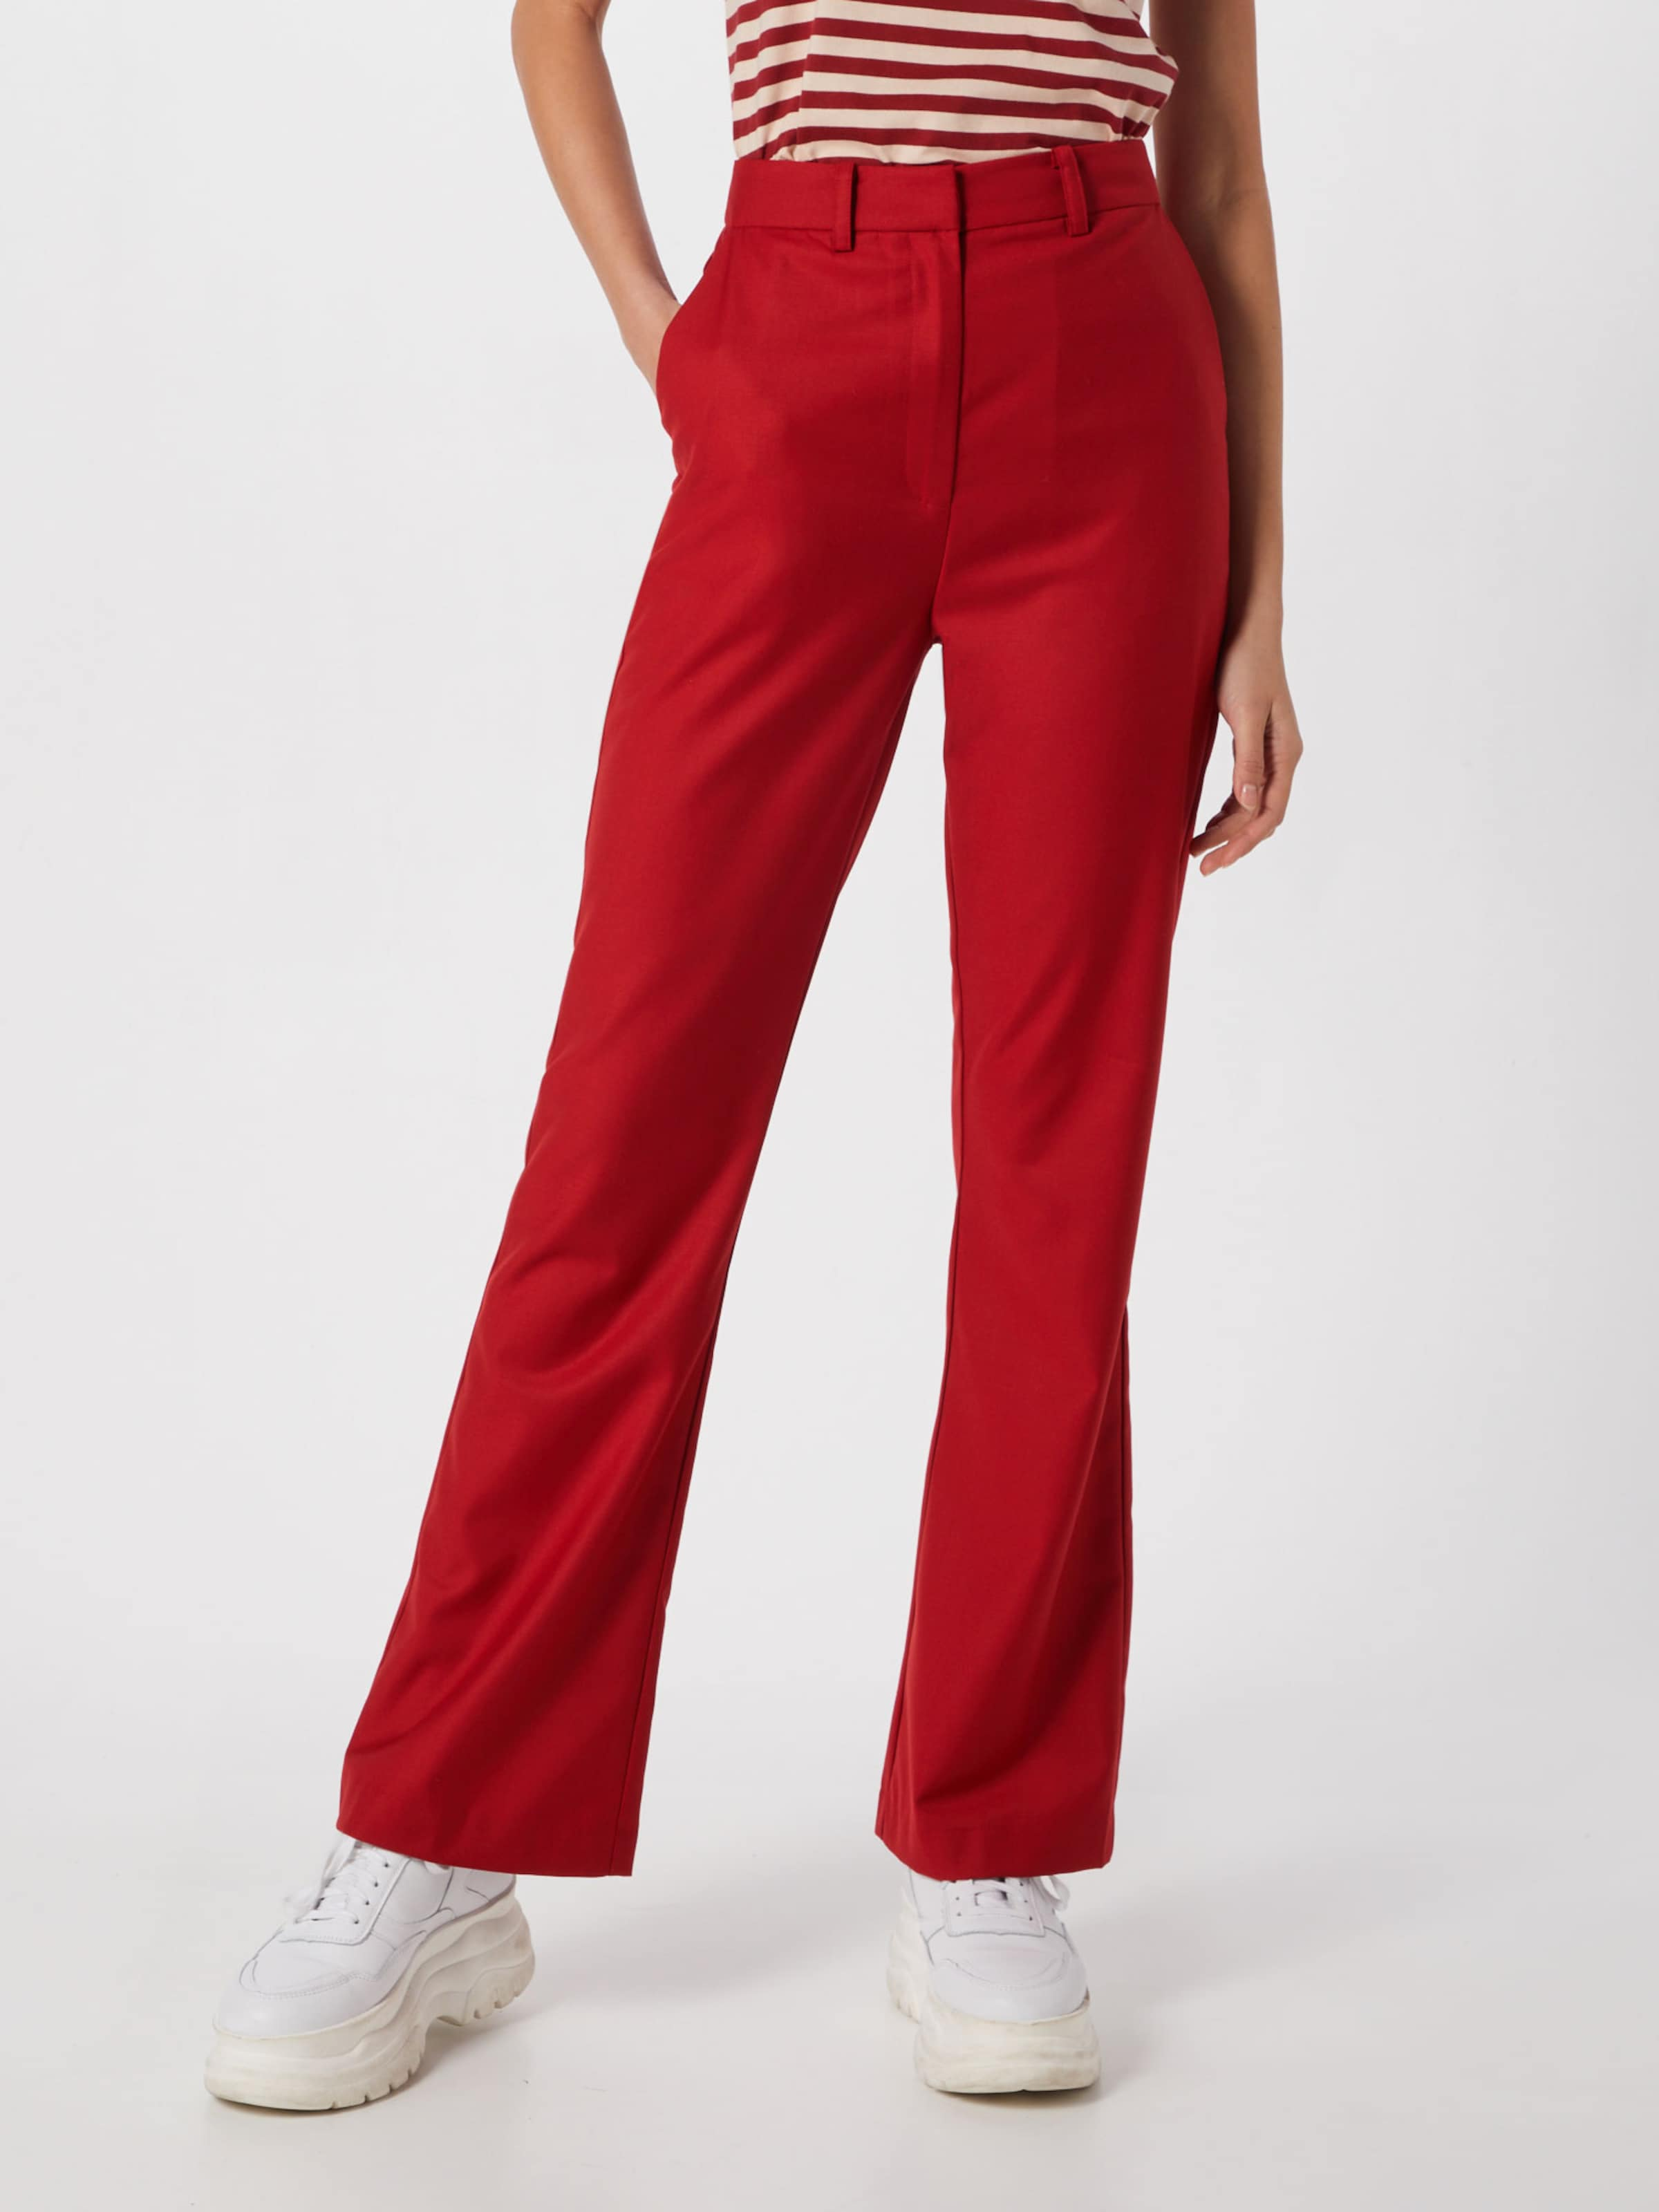 Reckless Hose Trouser' 4thamp; 'shanghai In Rot jqUzpSLMVG